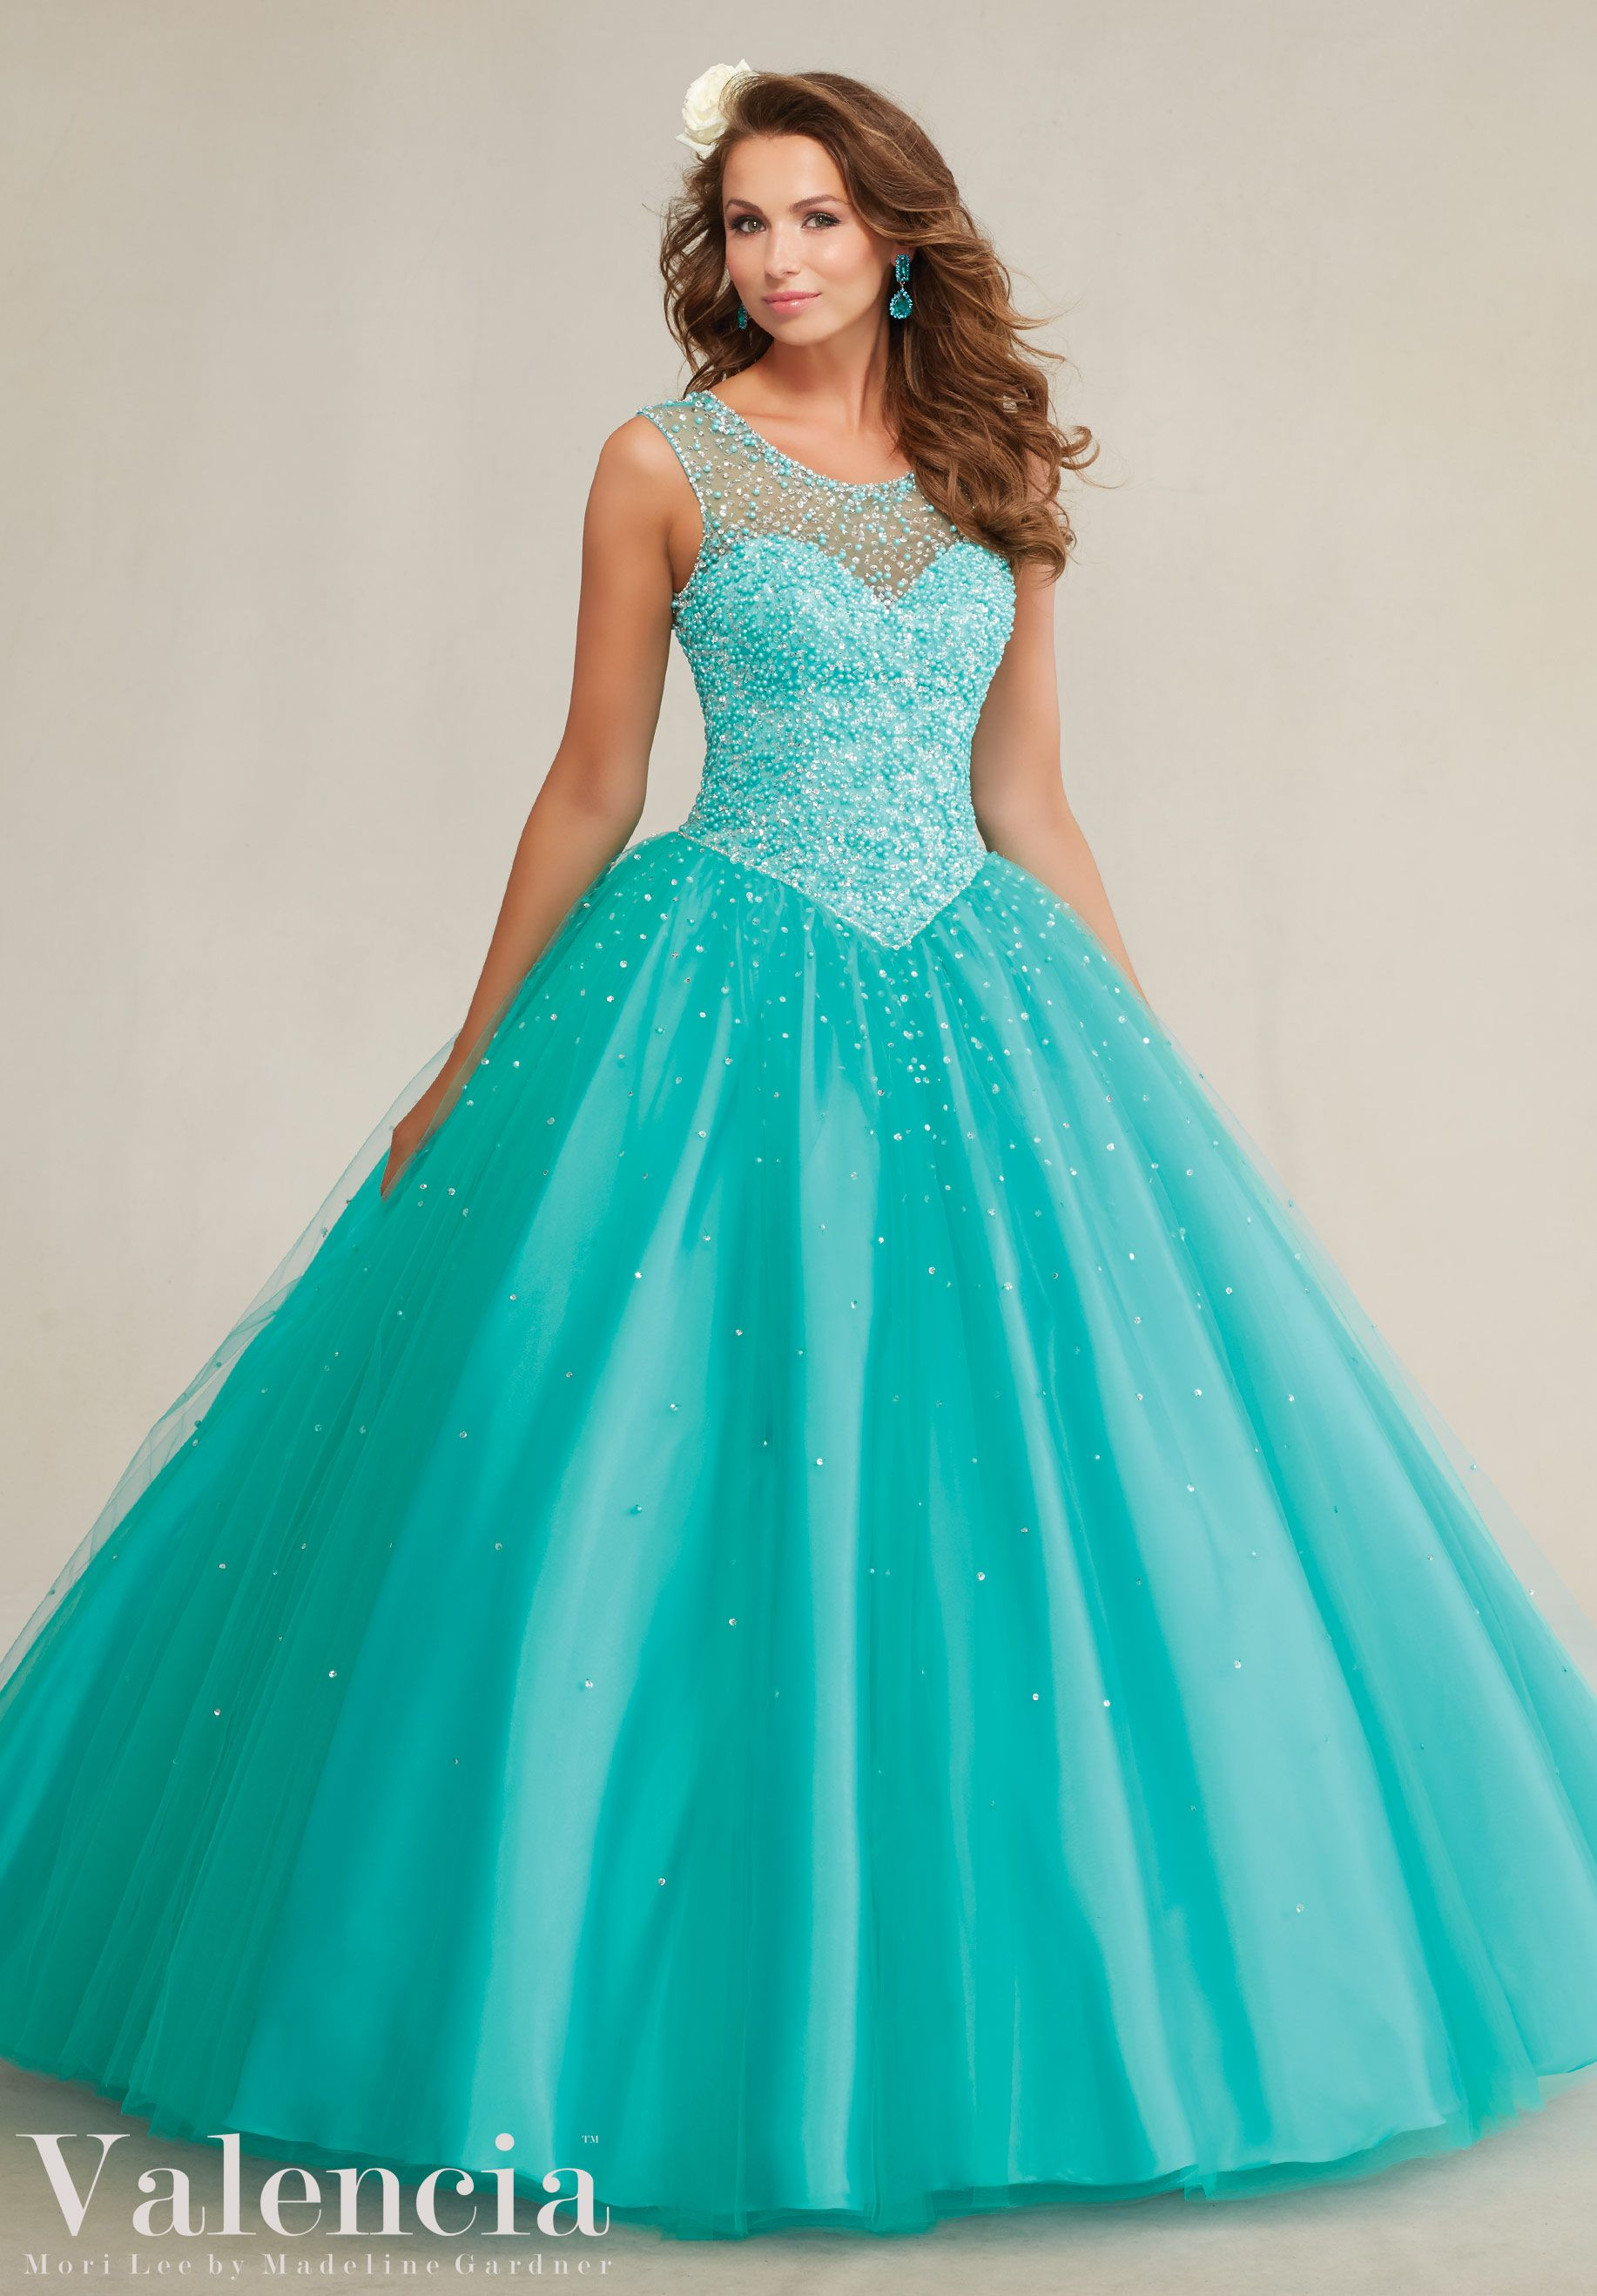 080d4310ab5 Beaded Tulle Ball Gown Style Quinceañera Dress